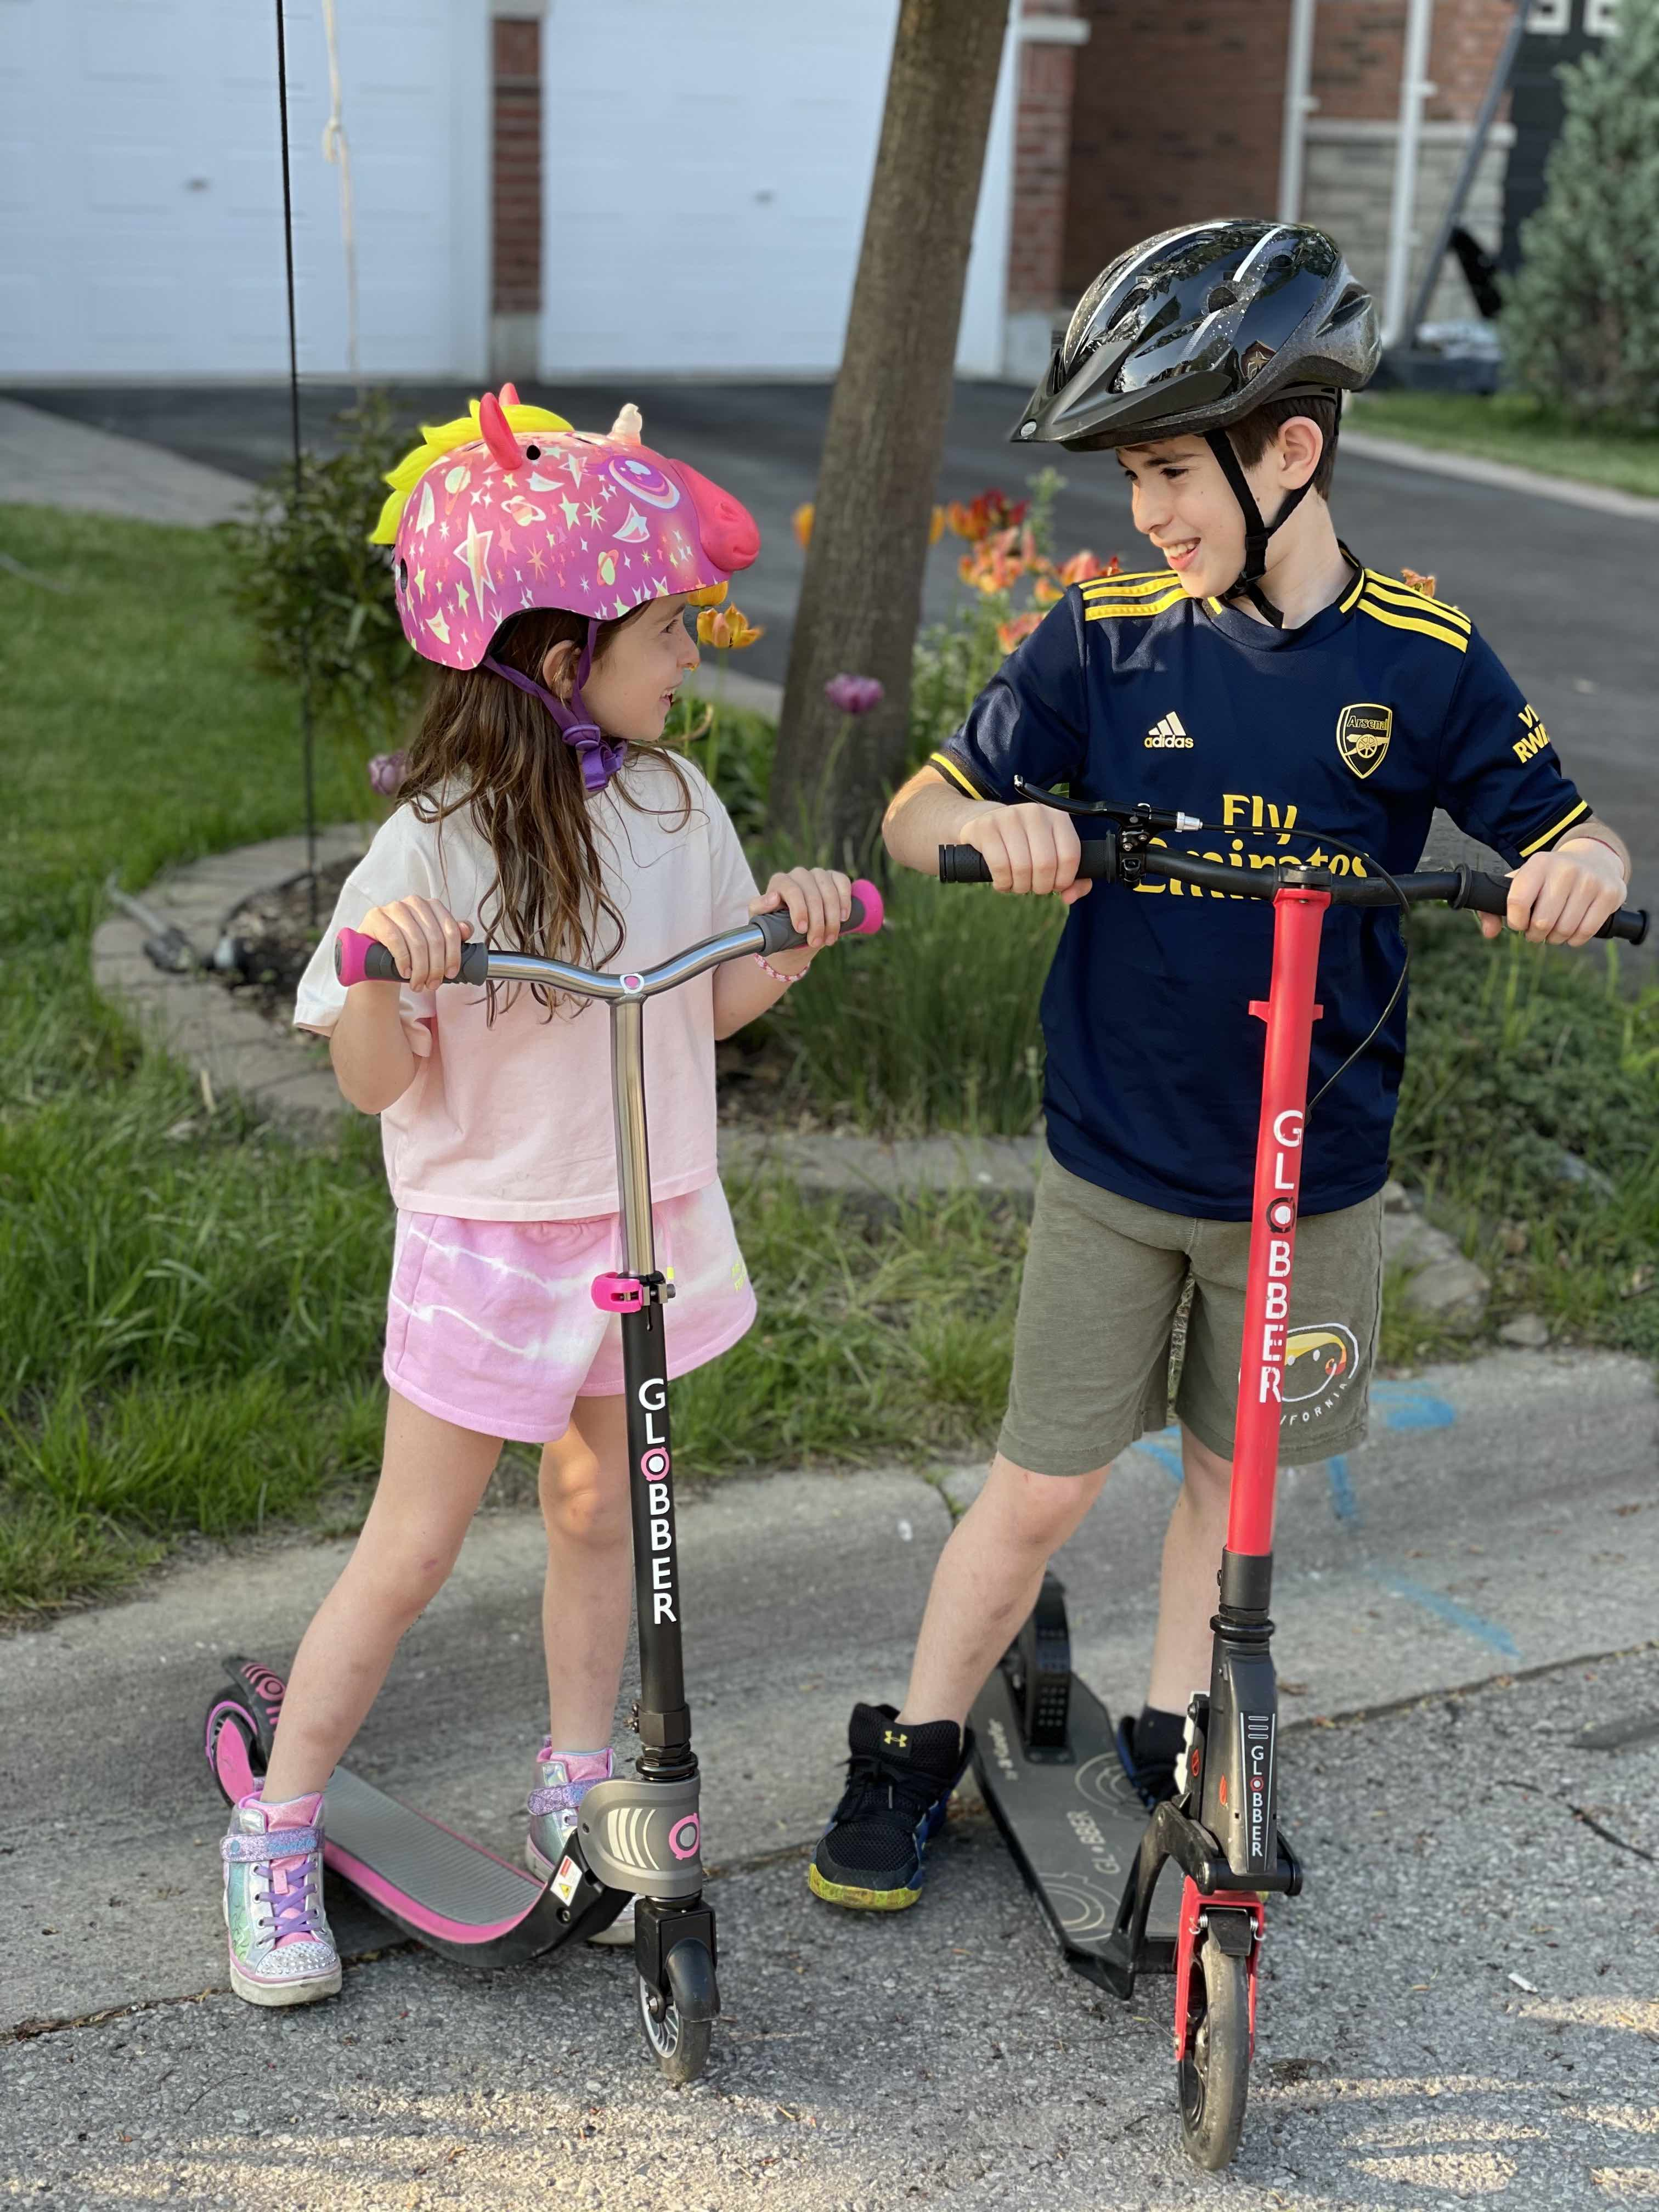 kids on Globber scooters